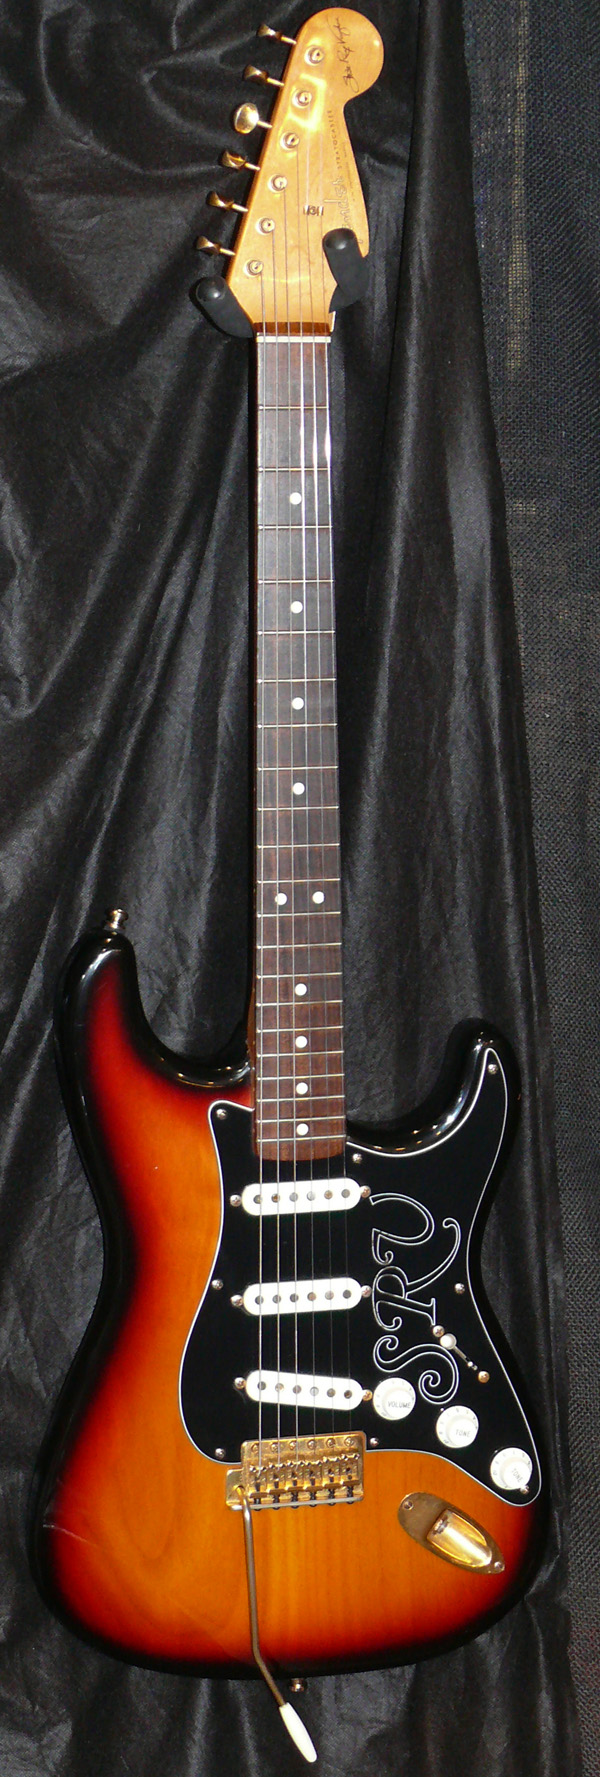 Fender U.S.A. `92 Stevie Ray Vaugan Sig Stratocaster